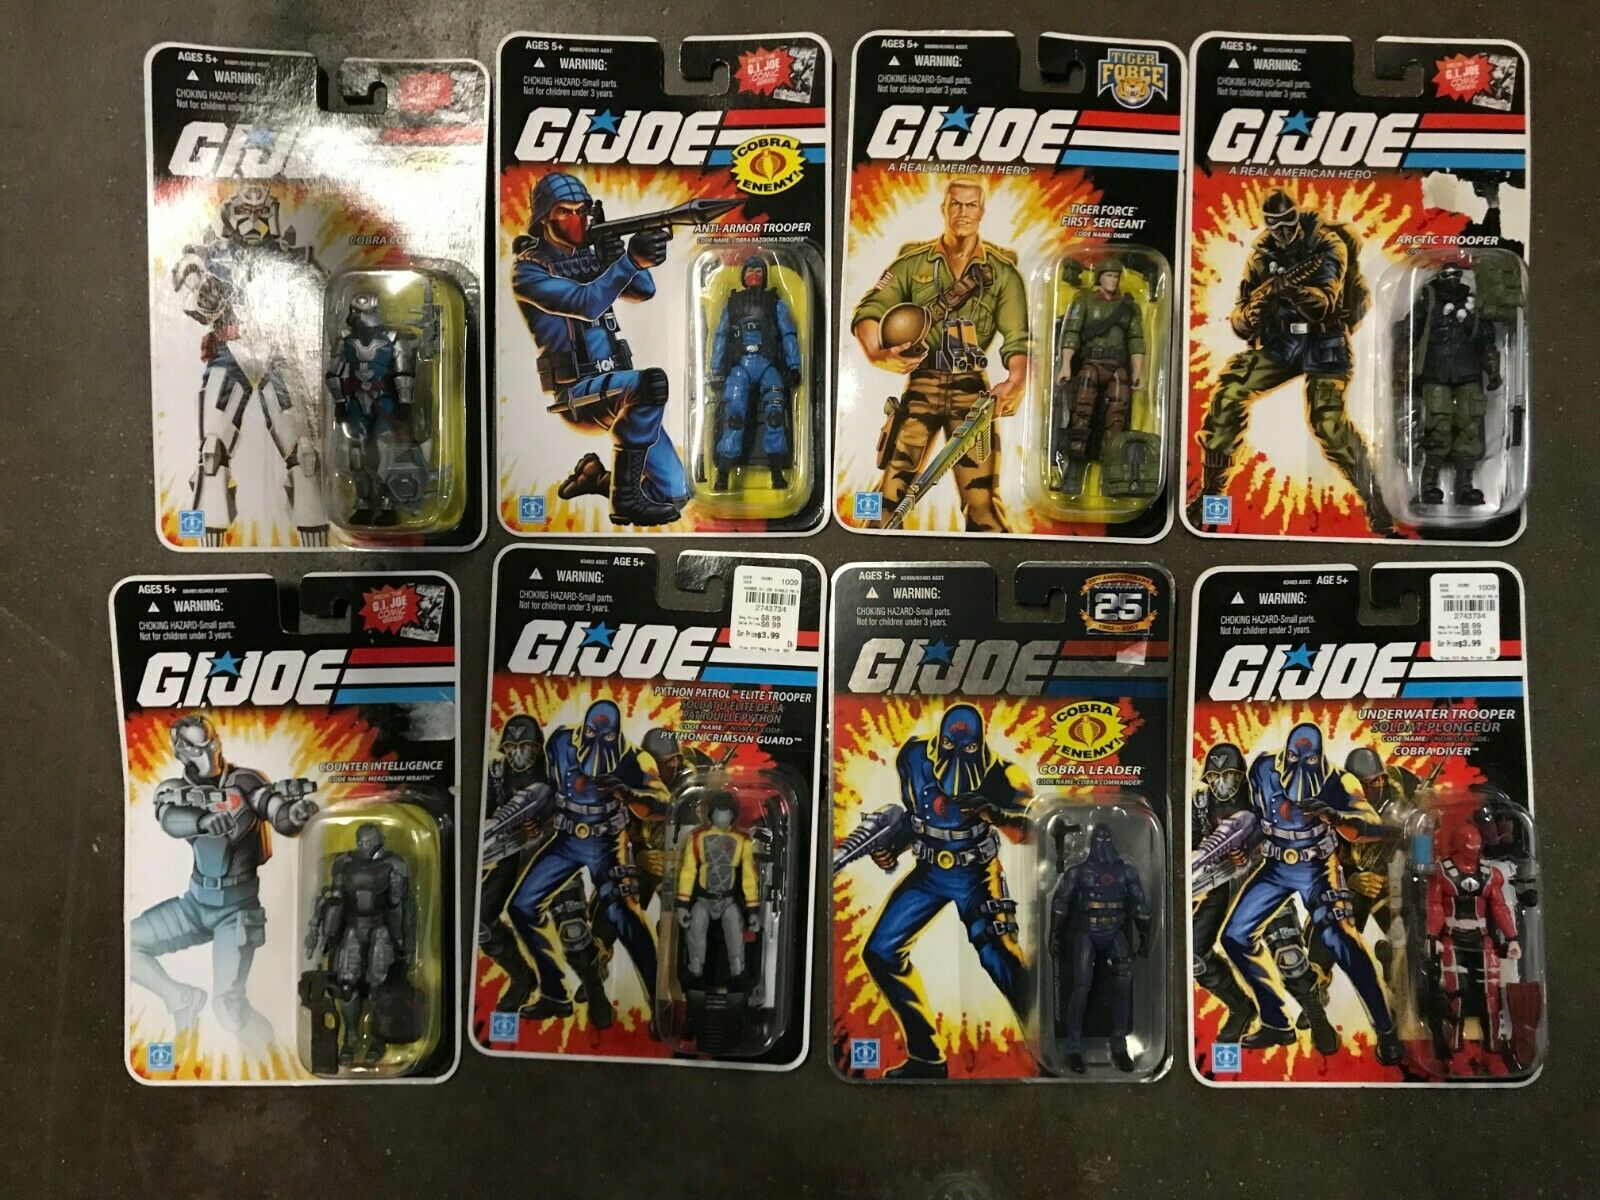 GI Joe Action Figures Variety Lot of 8 New In Packaging Excellent Condition NOS